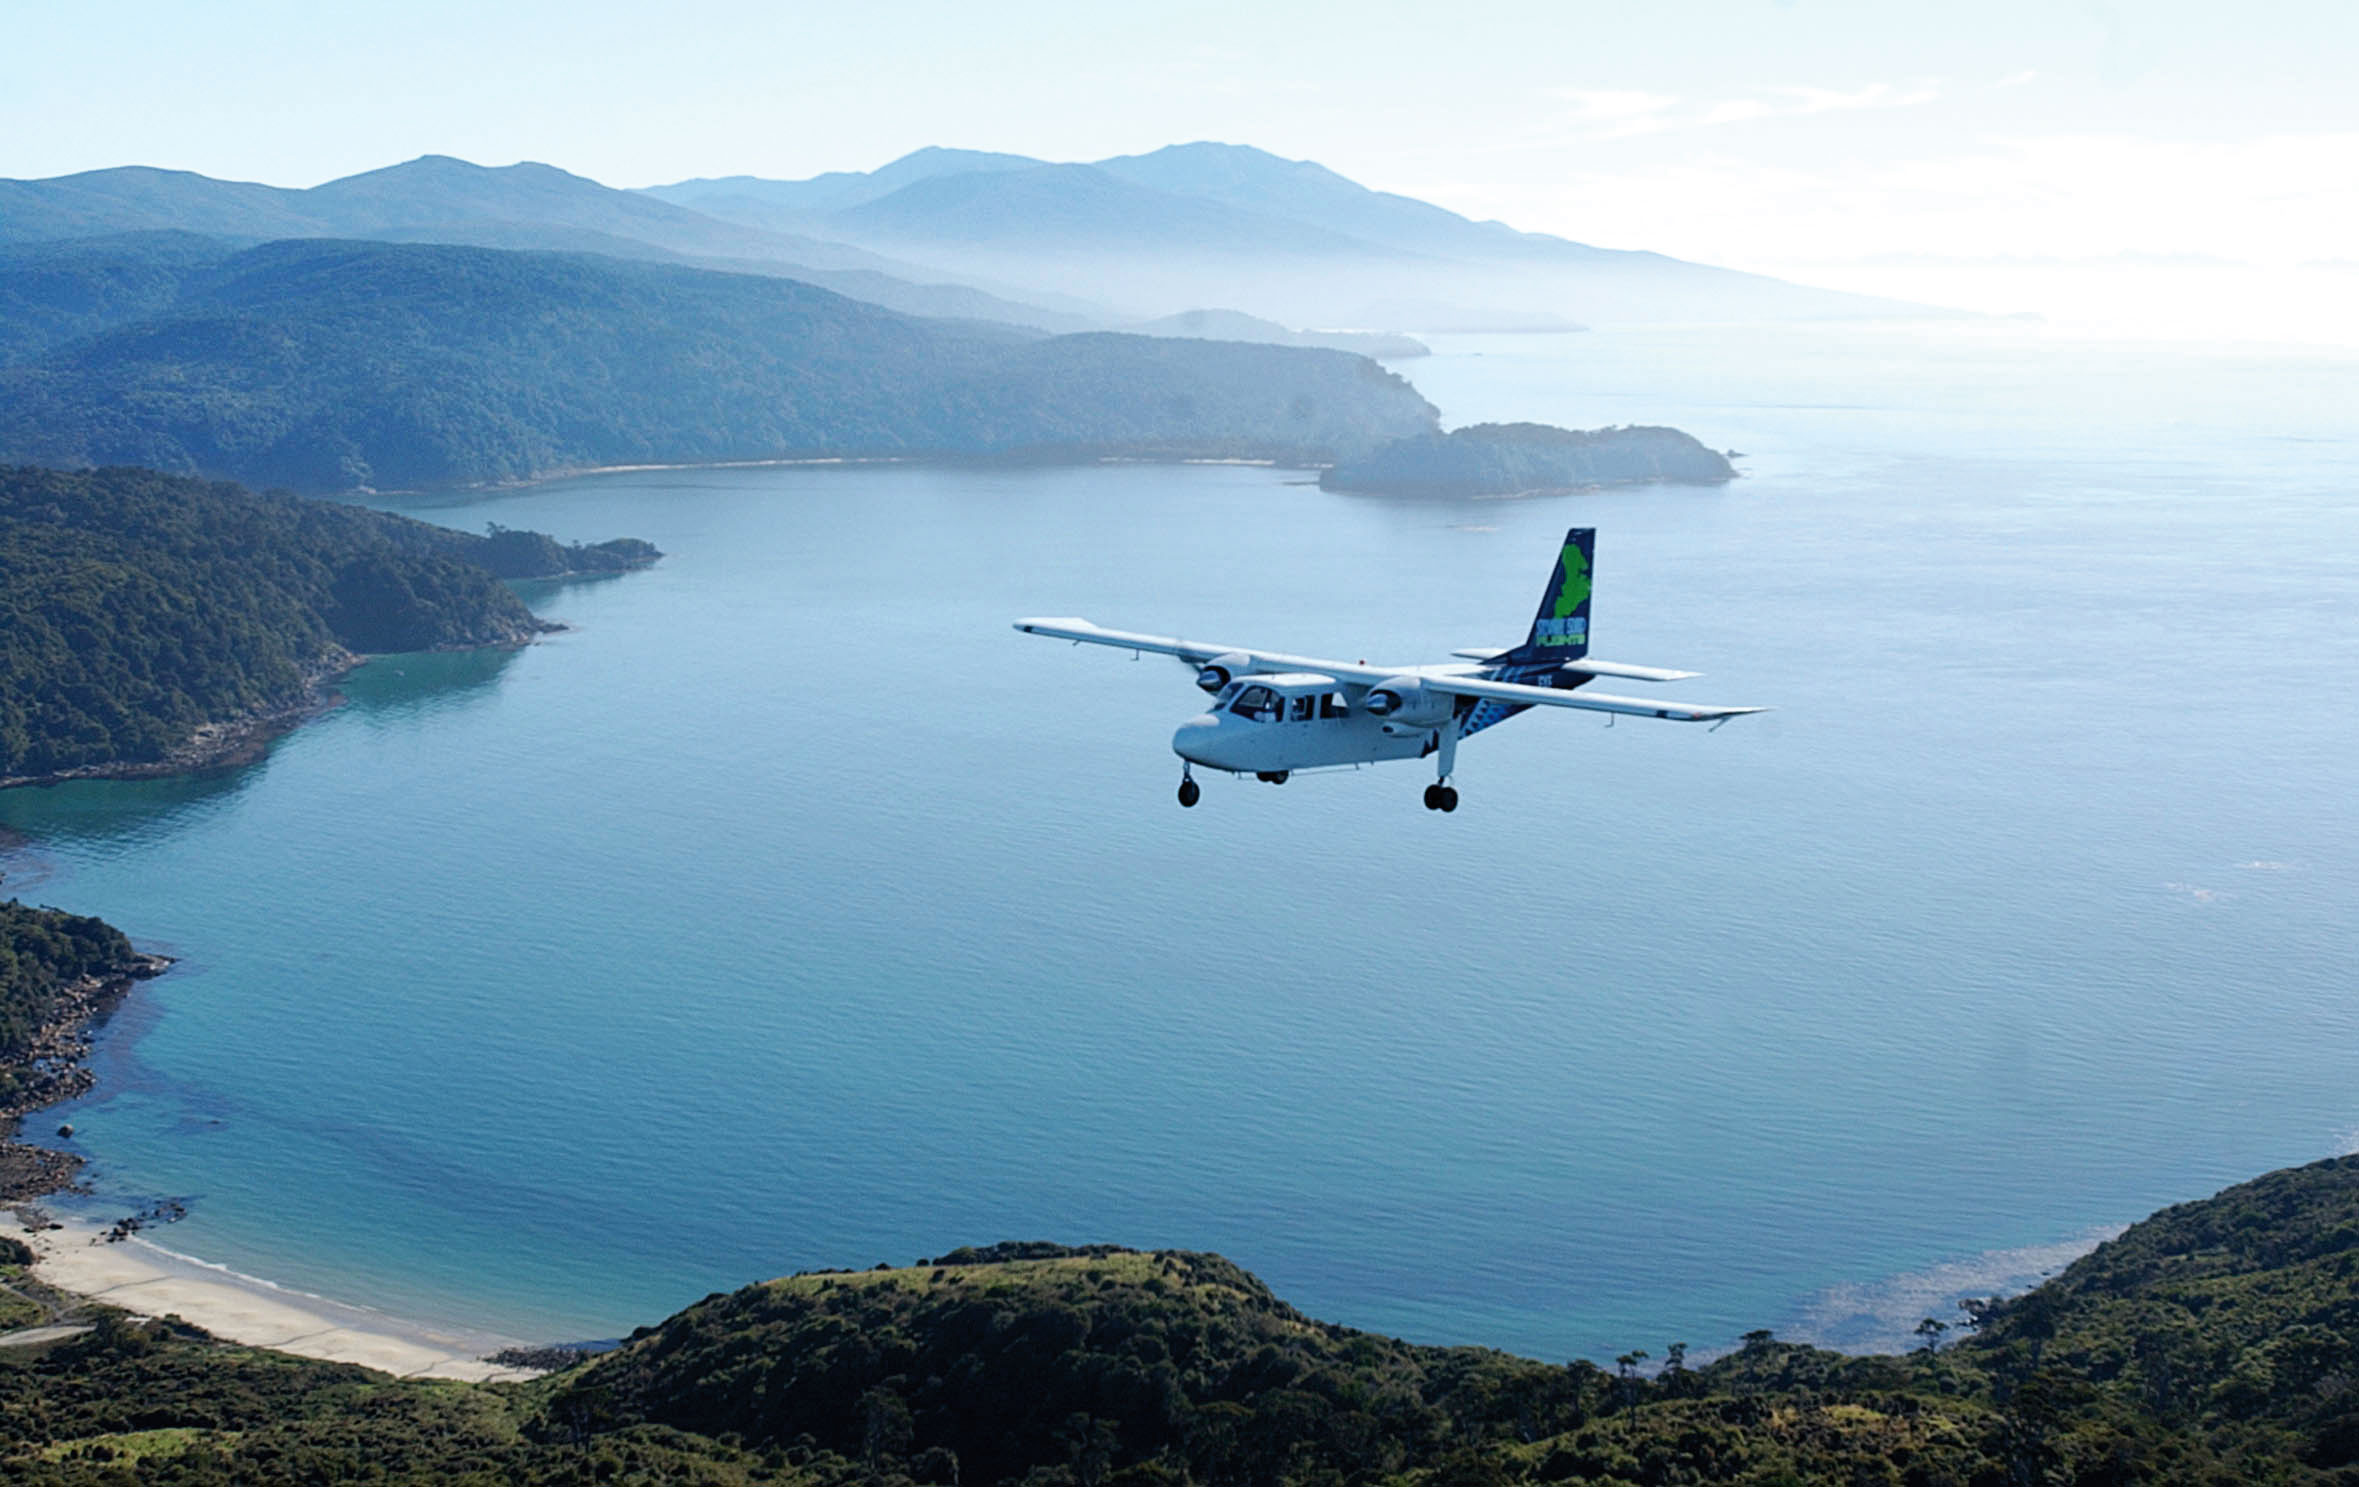 Small 6-seater aeroplane flying over a stretch of water with lush forested hills either side